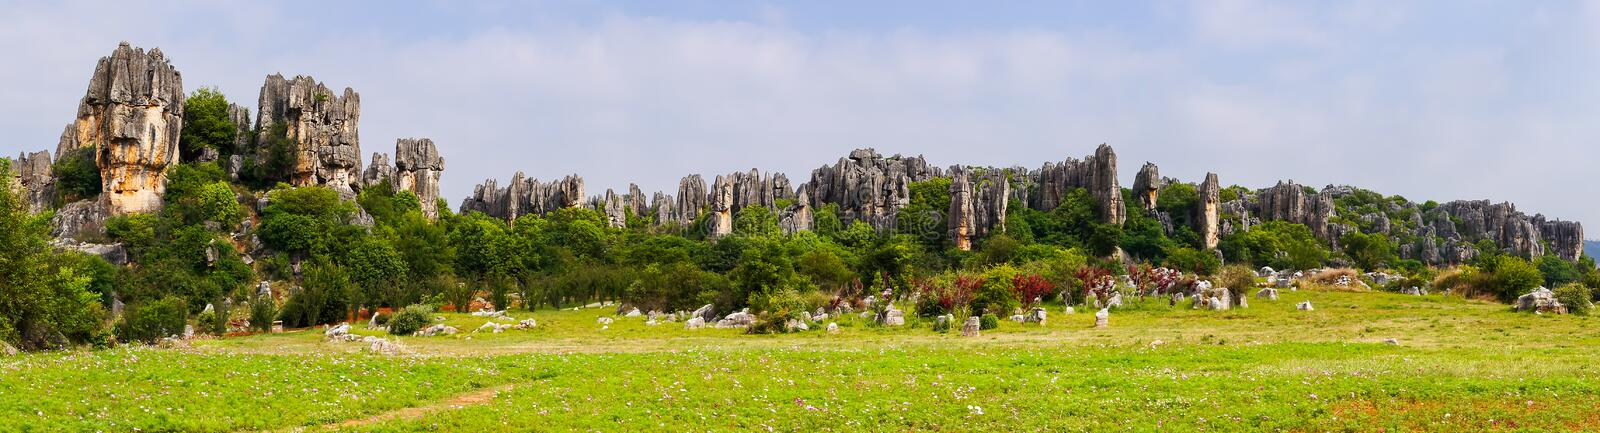 Panoramic view of Shilin limestone pinnacles Stone Forest - Yunnan, China stock photography